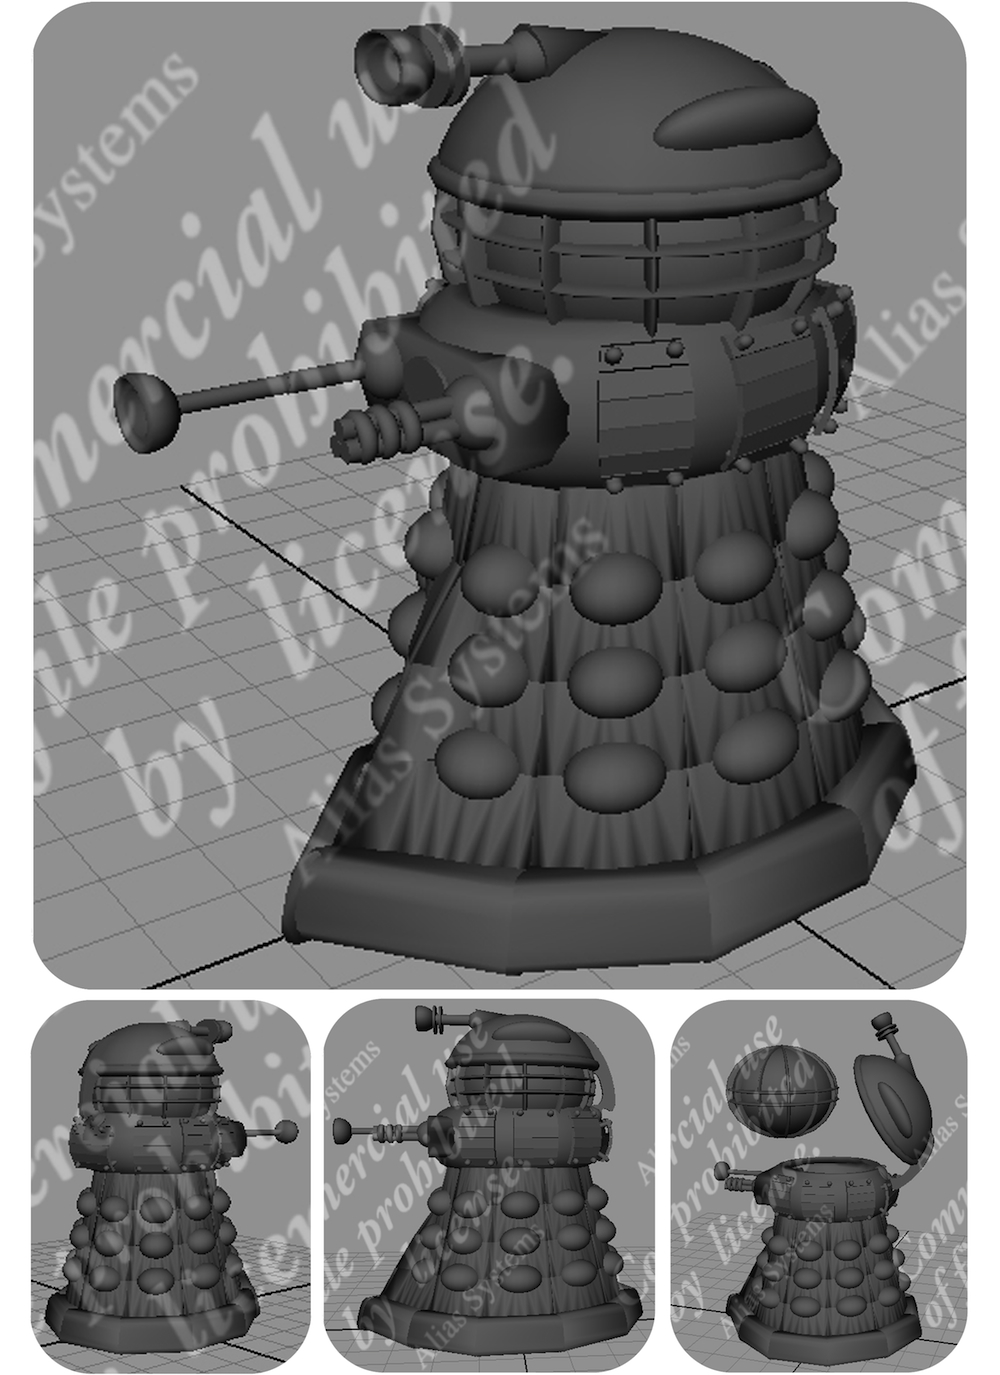 Modular digital Dalek (Doctor Who) design by Bruce Whistlecraft, Doktor A.